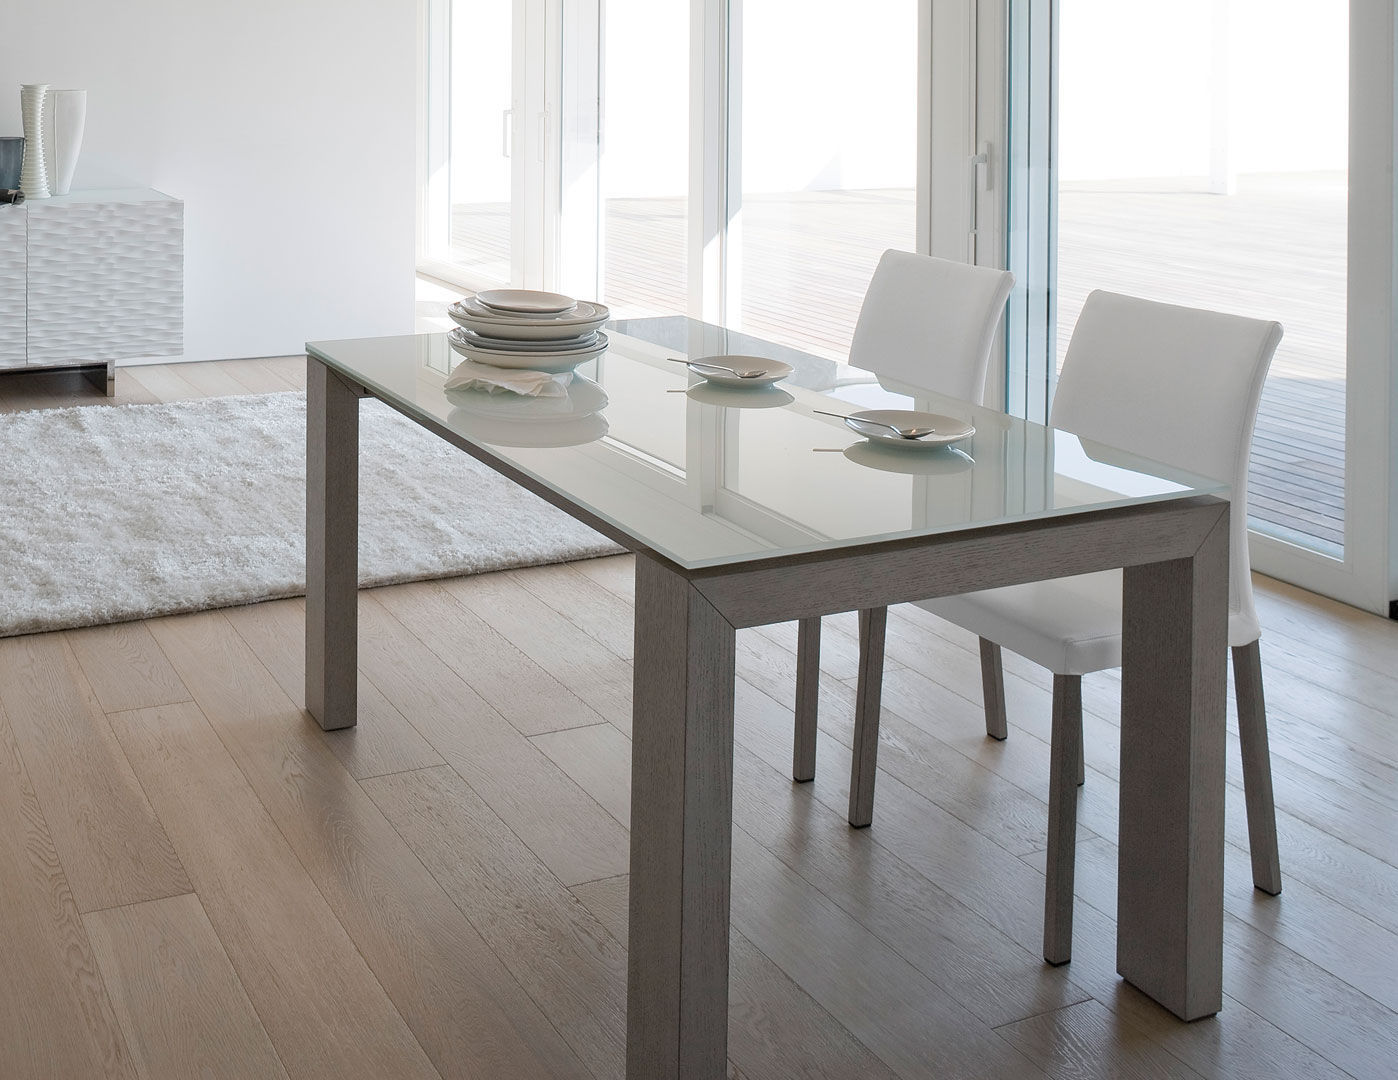 Contemporary Dining Table Glass Lacquered Wood Rectangular MONTREAL ANTONELLOITALIA